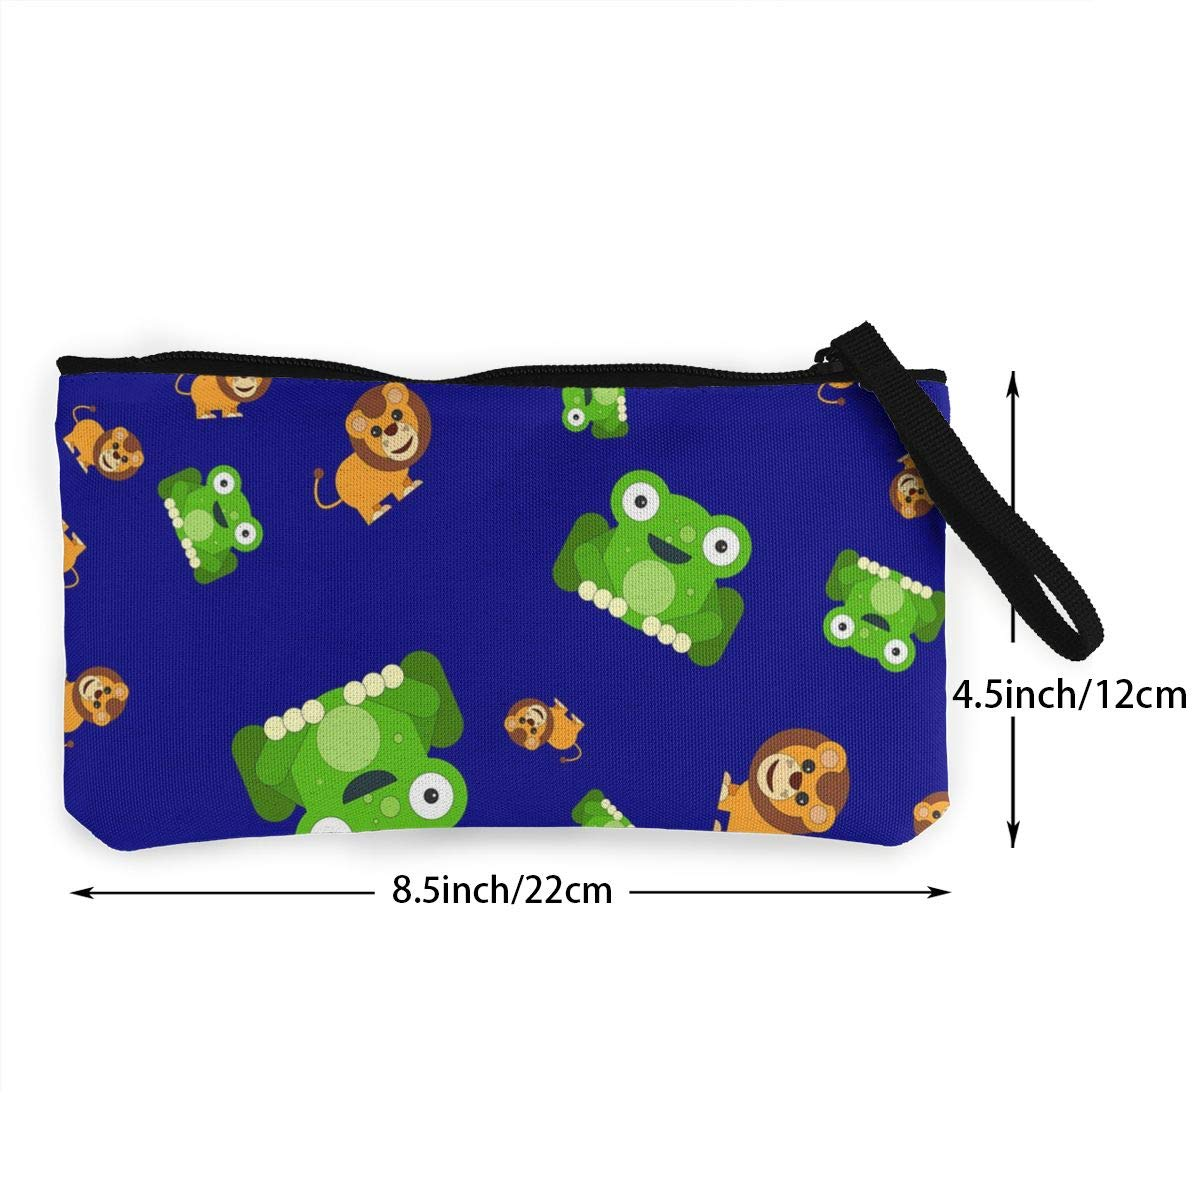 Yamini Navy Blue Frog/&Lion Pattern Cute Looking Coin Purse Small and Exquisite Going Out to Carry Purse